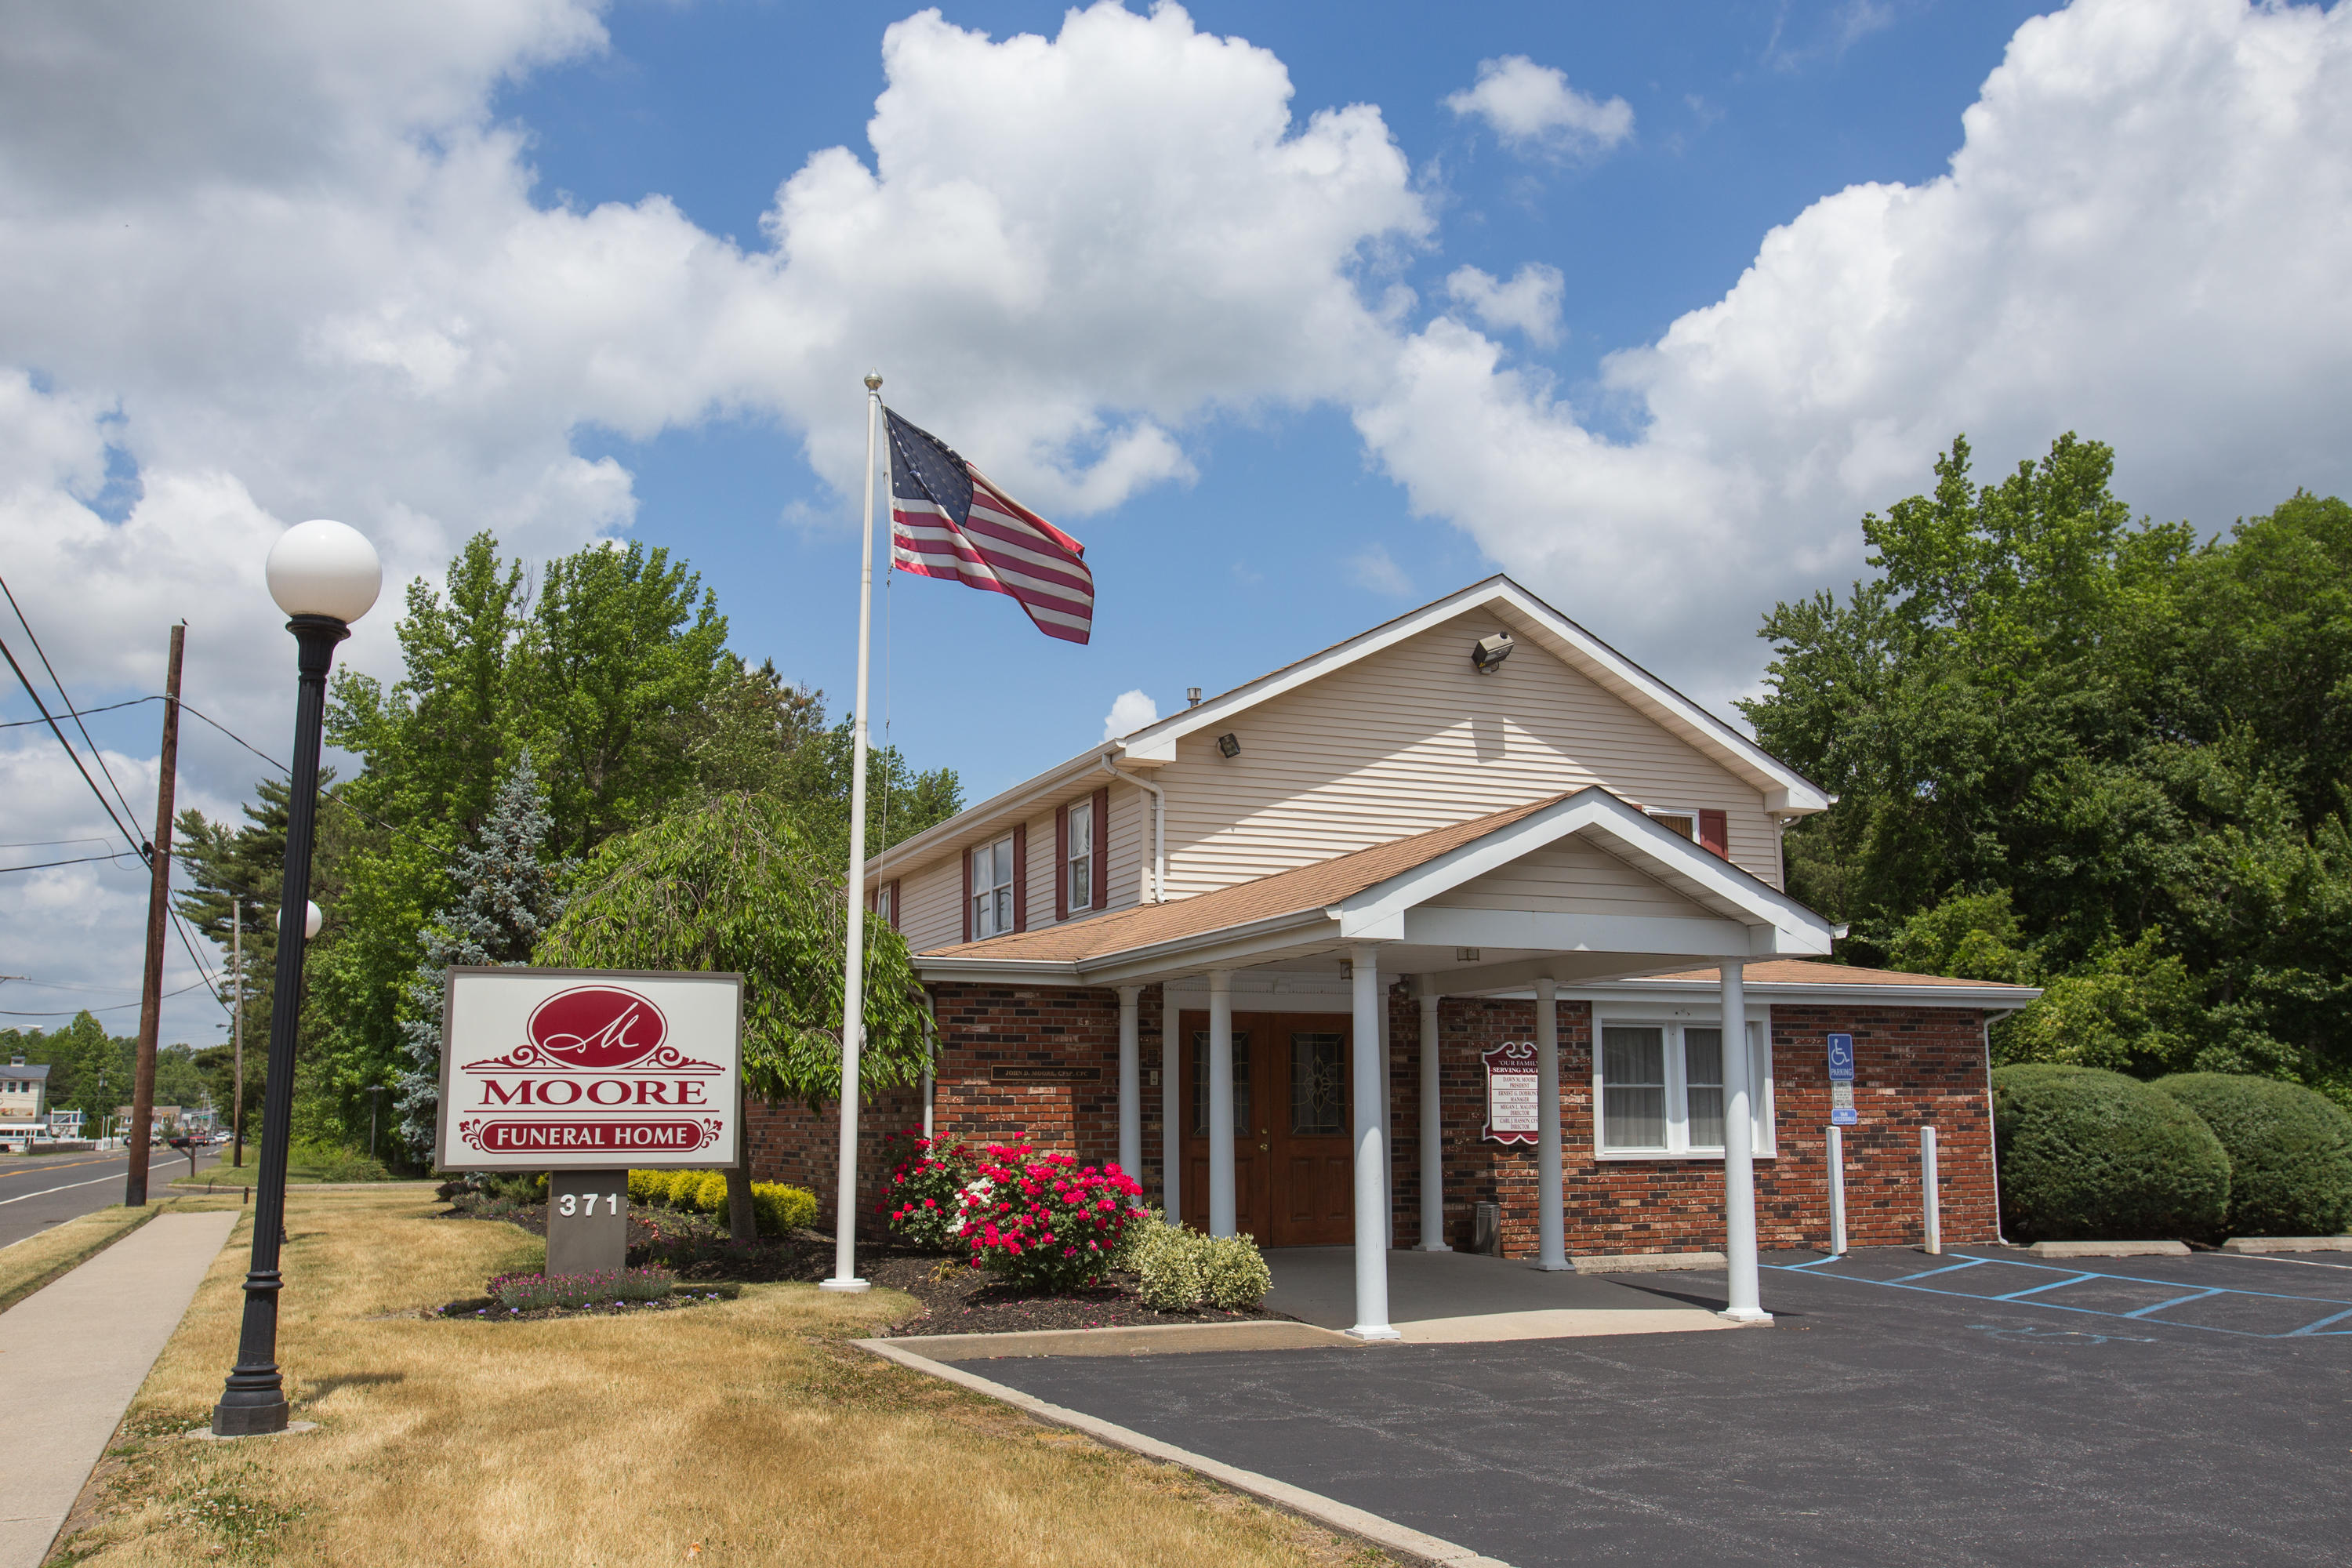 Mathis Funeral Home image 6